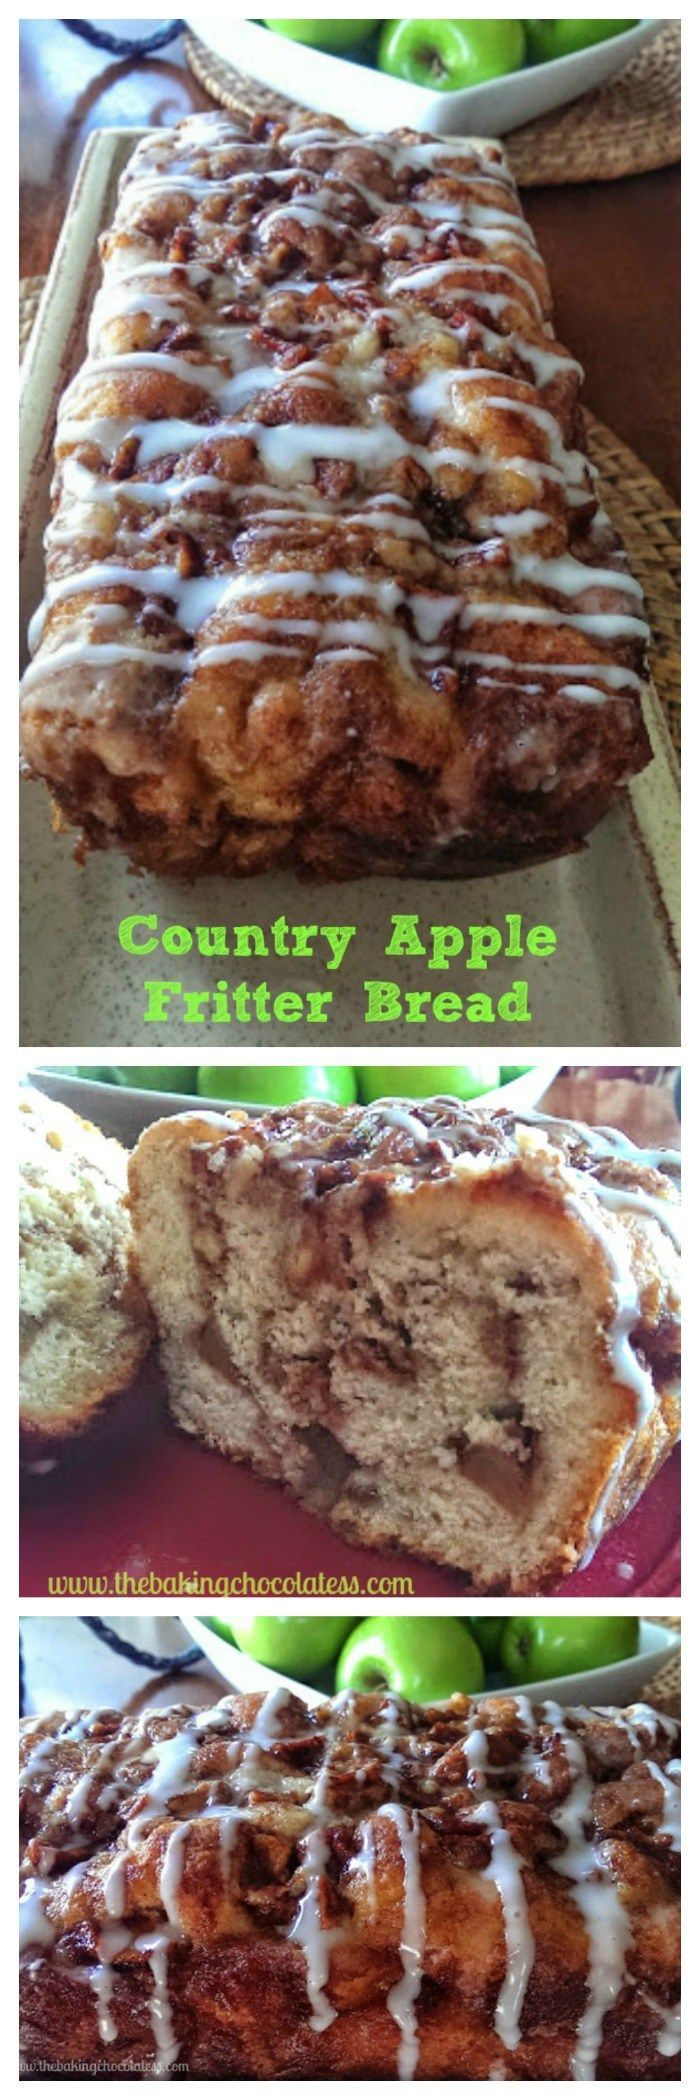 This Awesome Country Apple Fritter Bread is one of the top recipes on the blog! It's so versatile, delicious and doesn't last long!